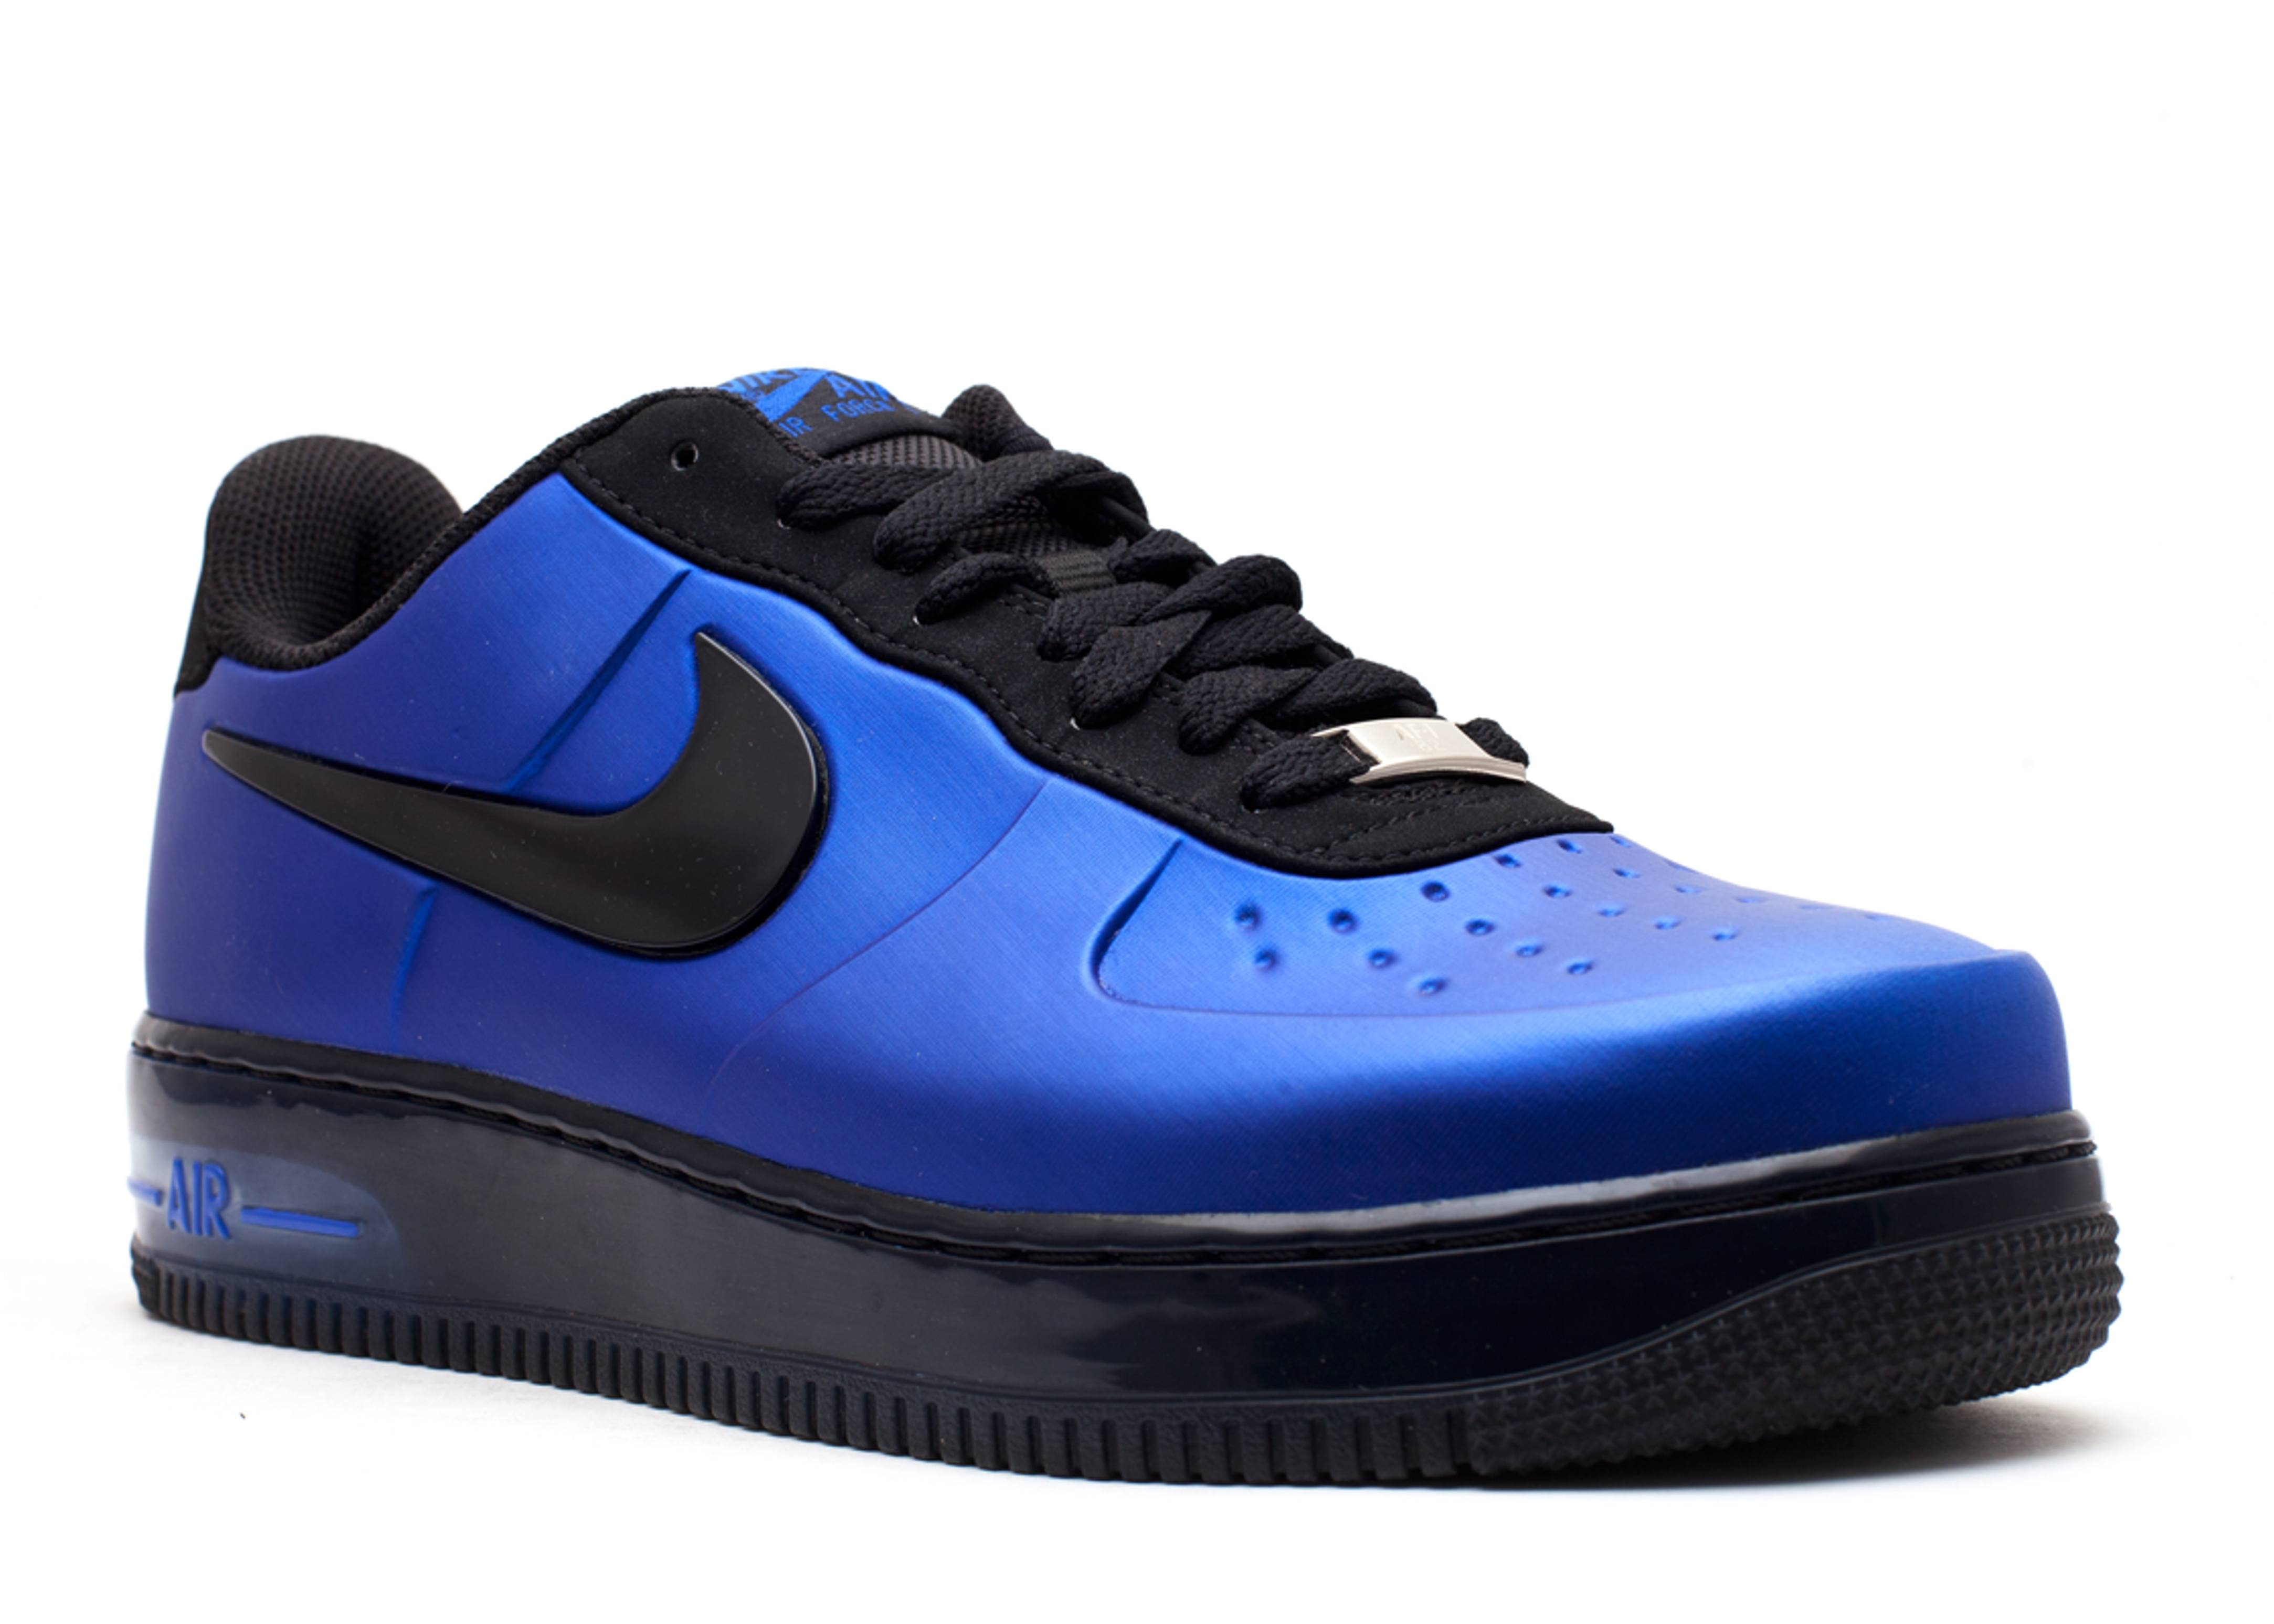 866be565c58 nike air force 1 foamposite pro low black for cheap